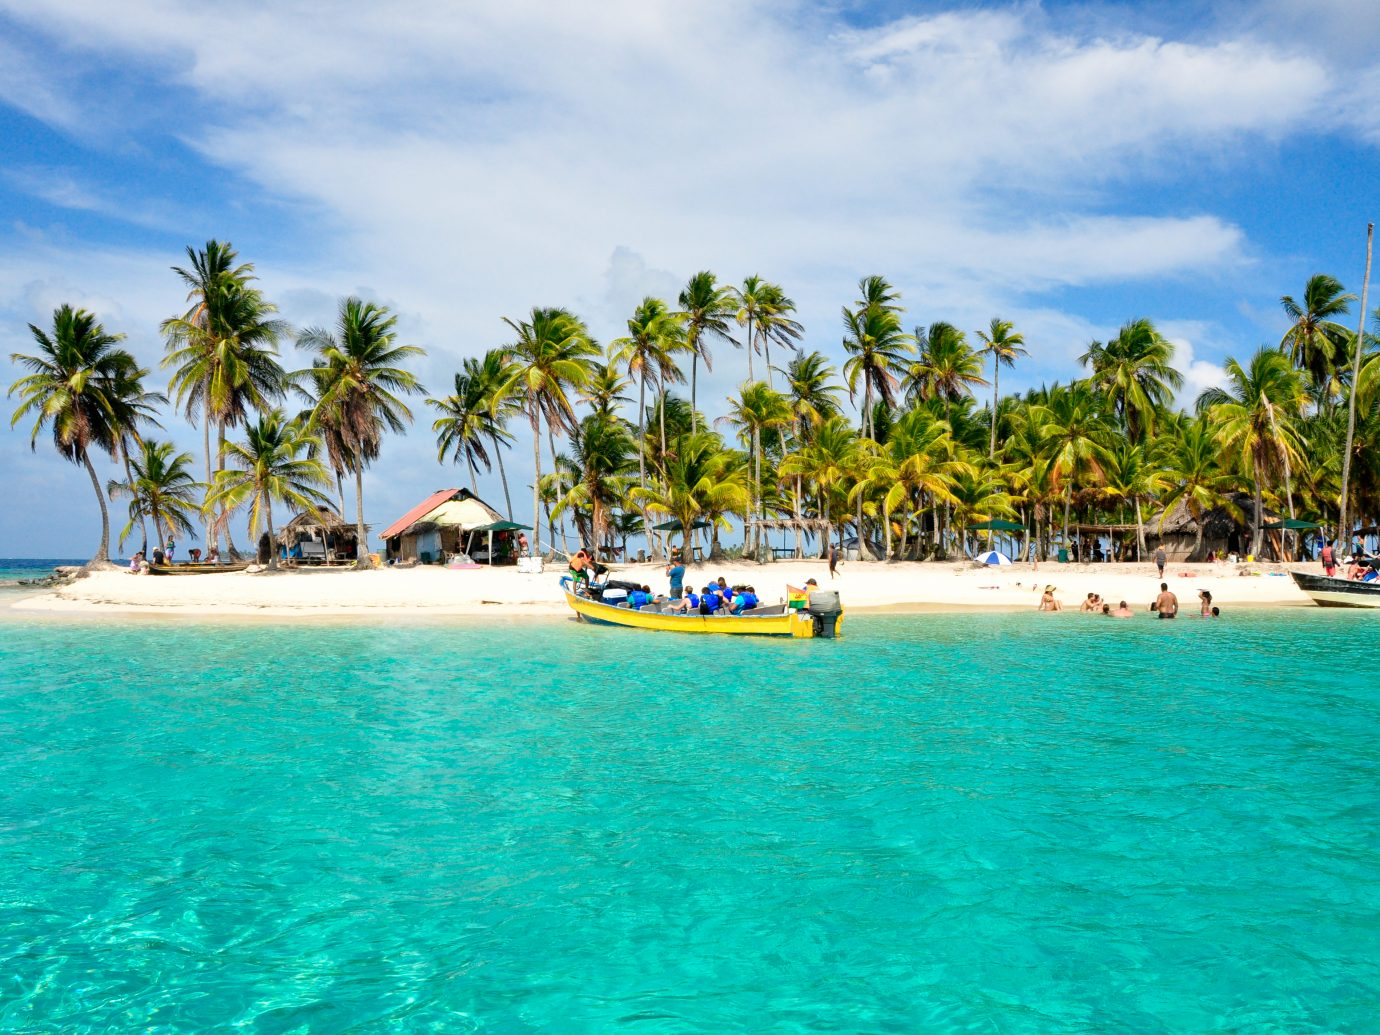 Arraving at a caribbean tropical Island, San Blas, Panama